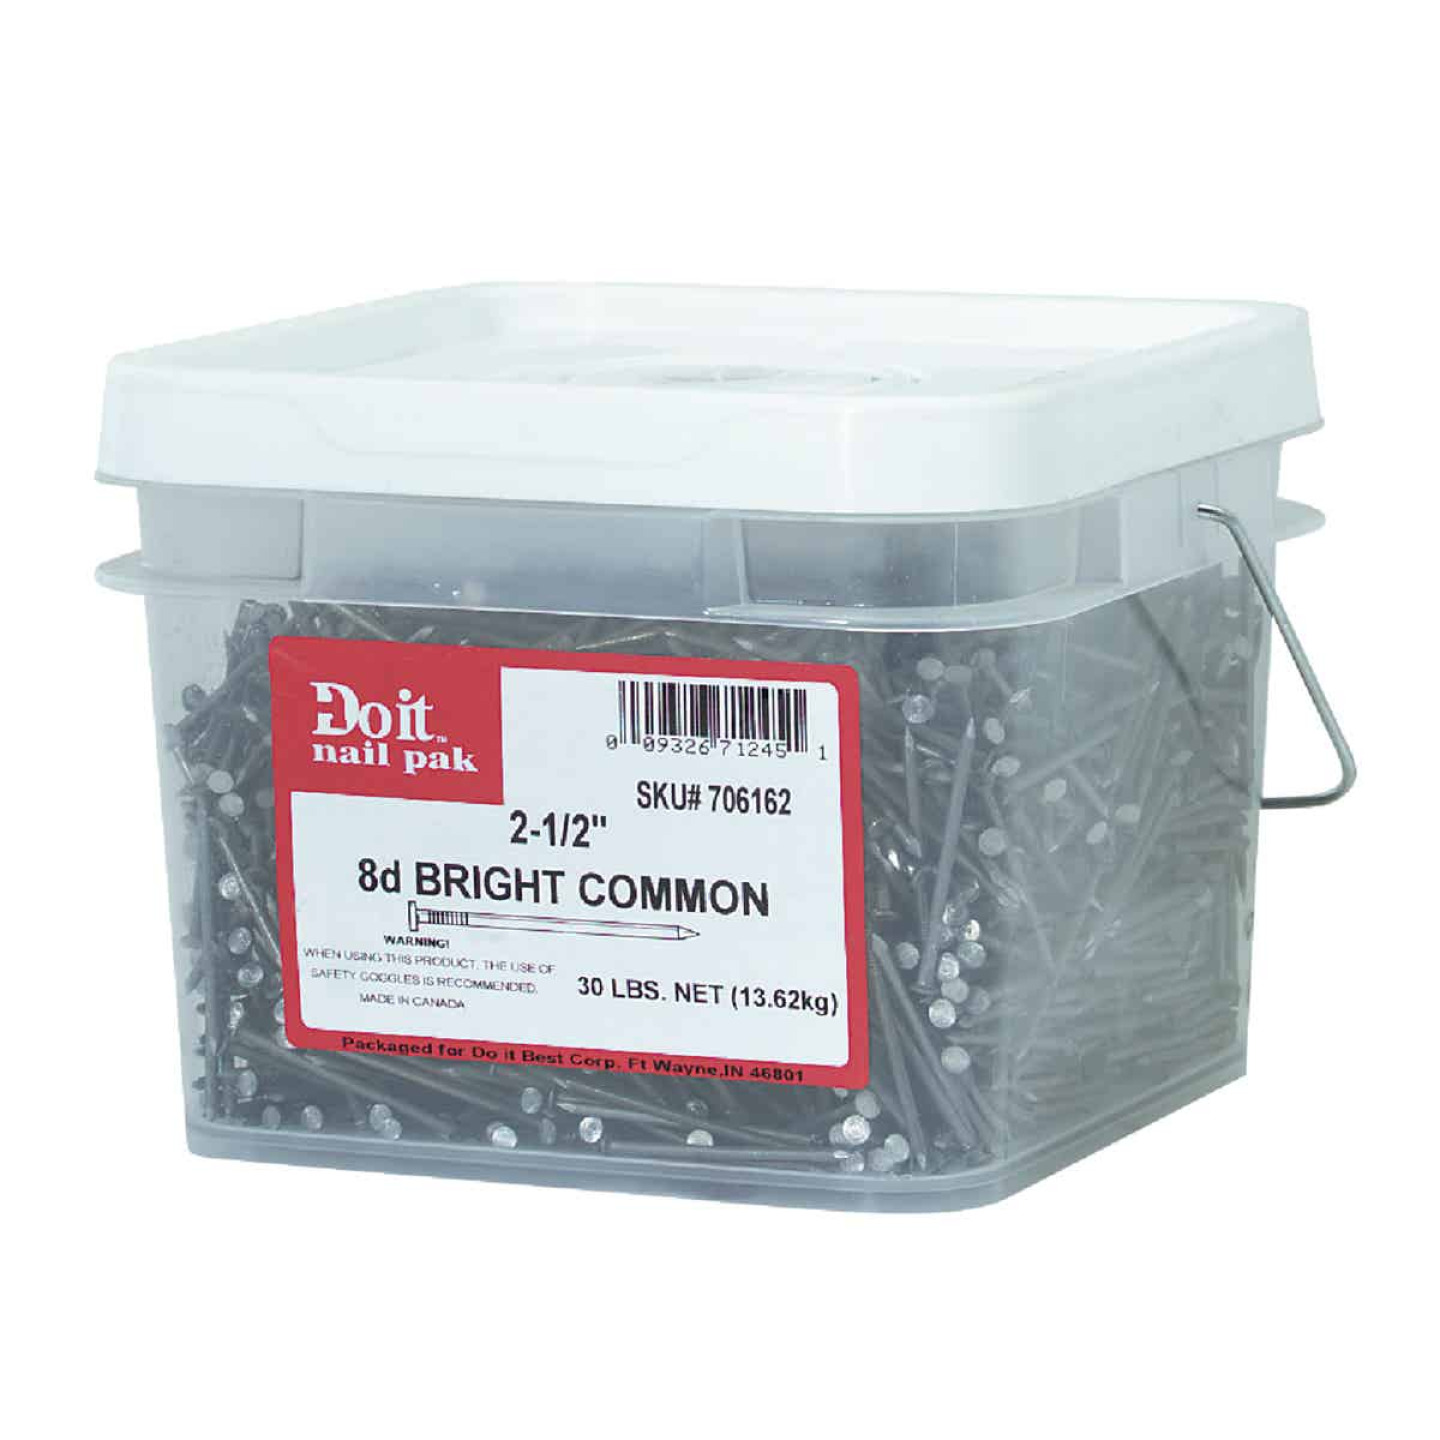 Grip-Rite 8d x 2-1/2 In. 10-1/4 ga Bright Common Nails (3030 Ct., 30 Lb.) Image 2